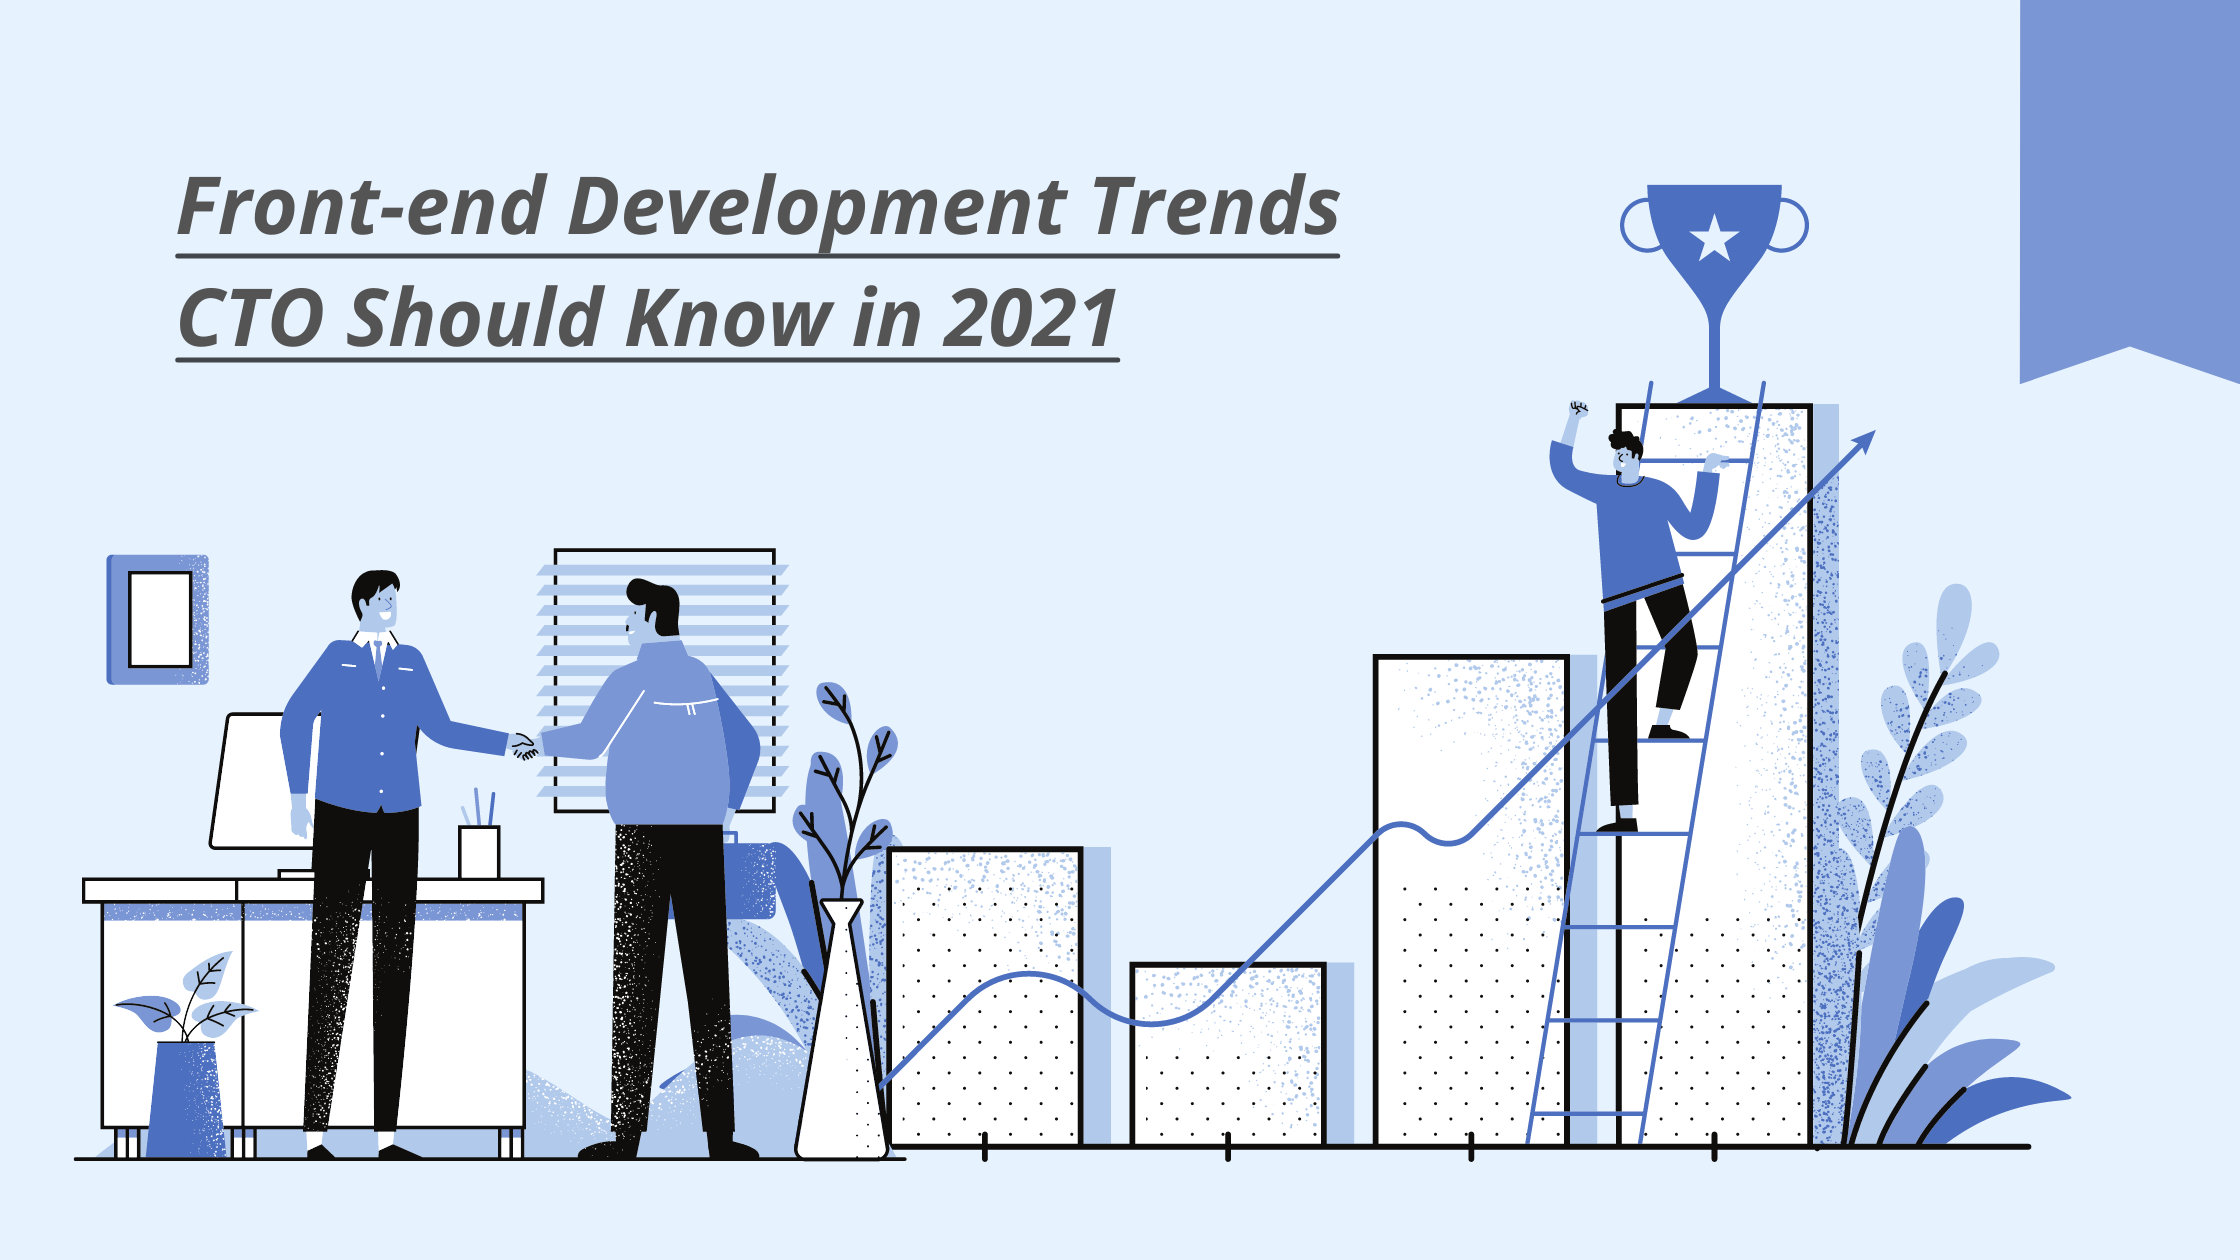 Front-end Development Trends CTO Should Know in 2021